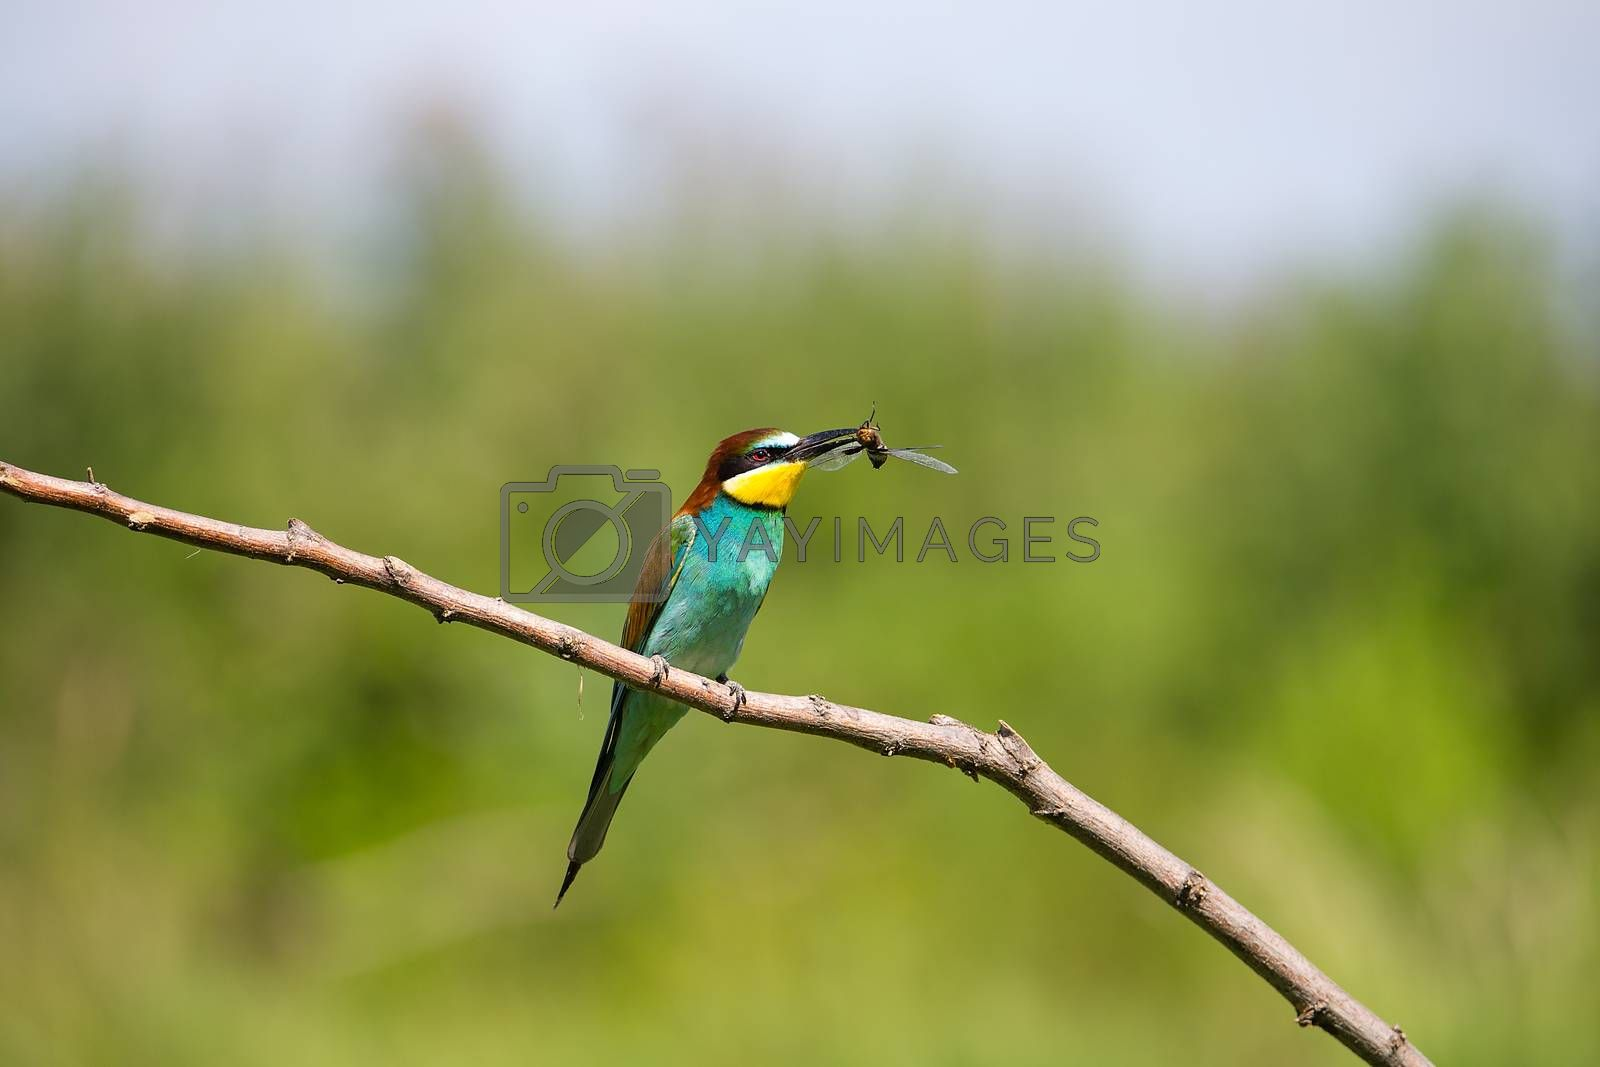 Bee-eater (Merops apiaster) playing with red dragonfly in beak on brunch - tropical colours bird, Isola della Cona, Monfalcone, Italy, Europe